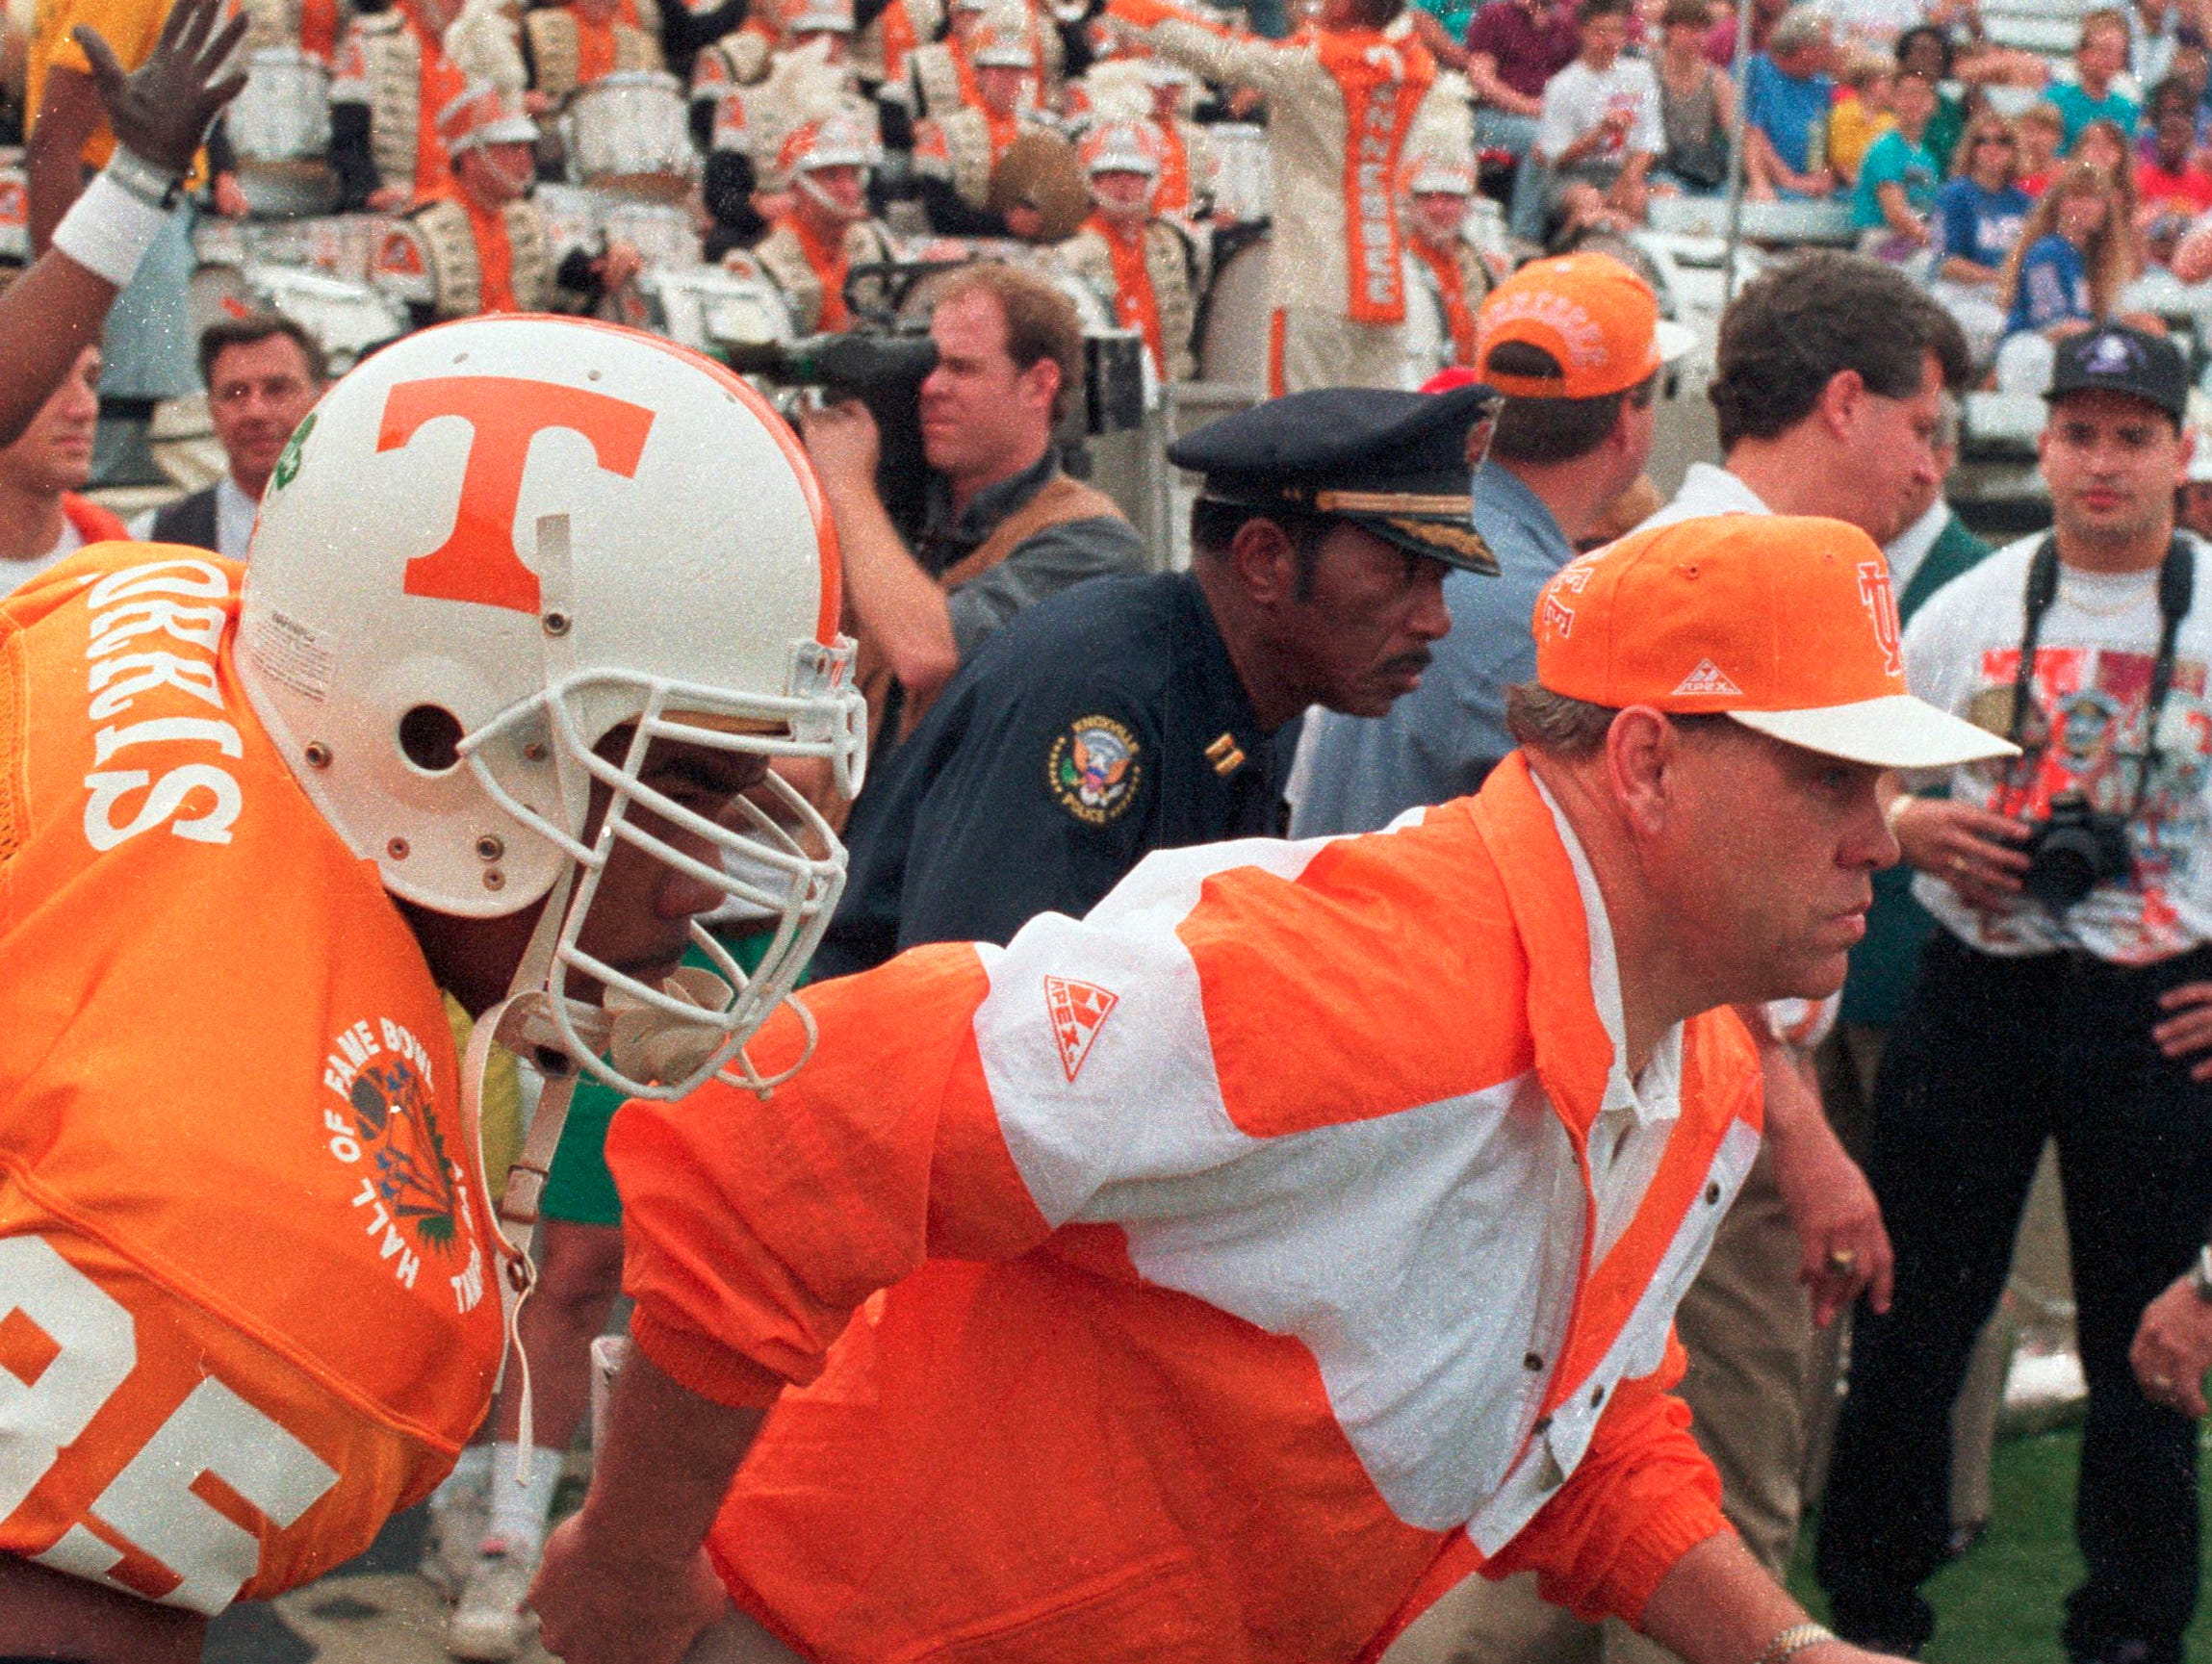 Phillip Fulmer takes the field for the first time as University of Tennessee head football coach Jan. 1, 1993, at the Hall of Fame Bowl in Tampa, Fla. The 17th-ranked Vols defeated Boston College 38-23 in Fulmer's first game after replacing Johnny Majors.(Paul Efird/News Sentinel)